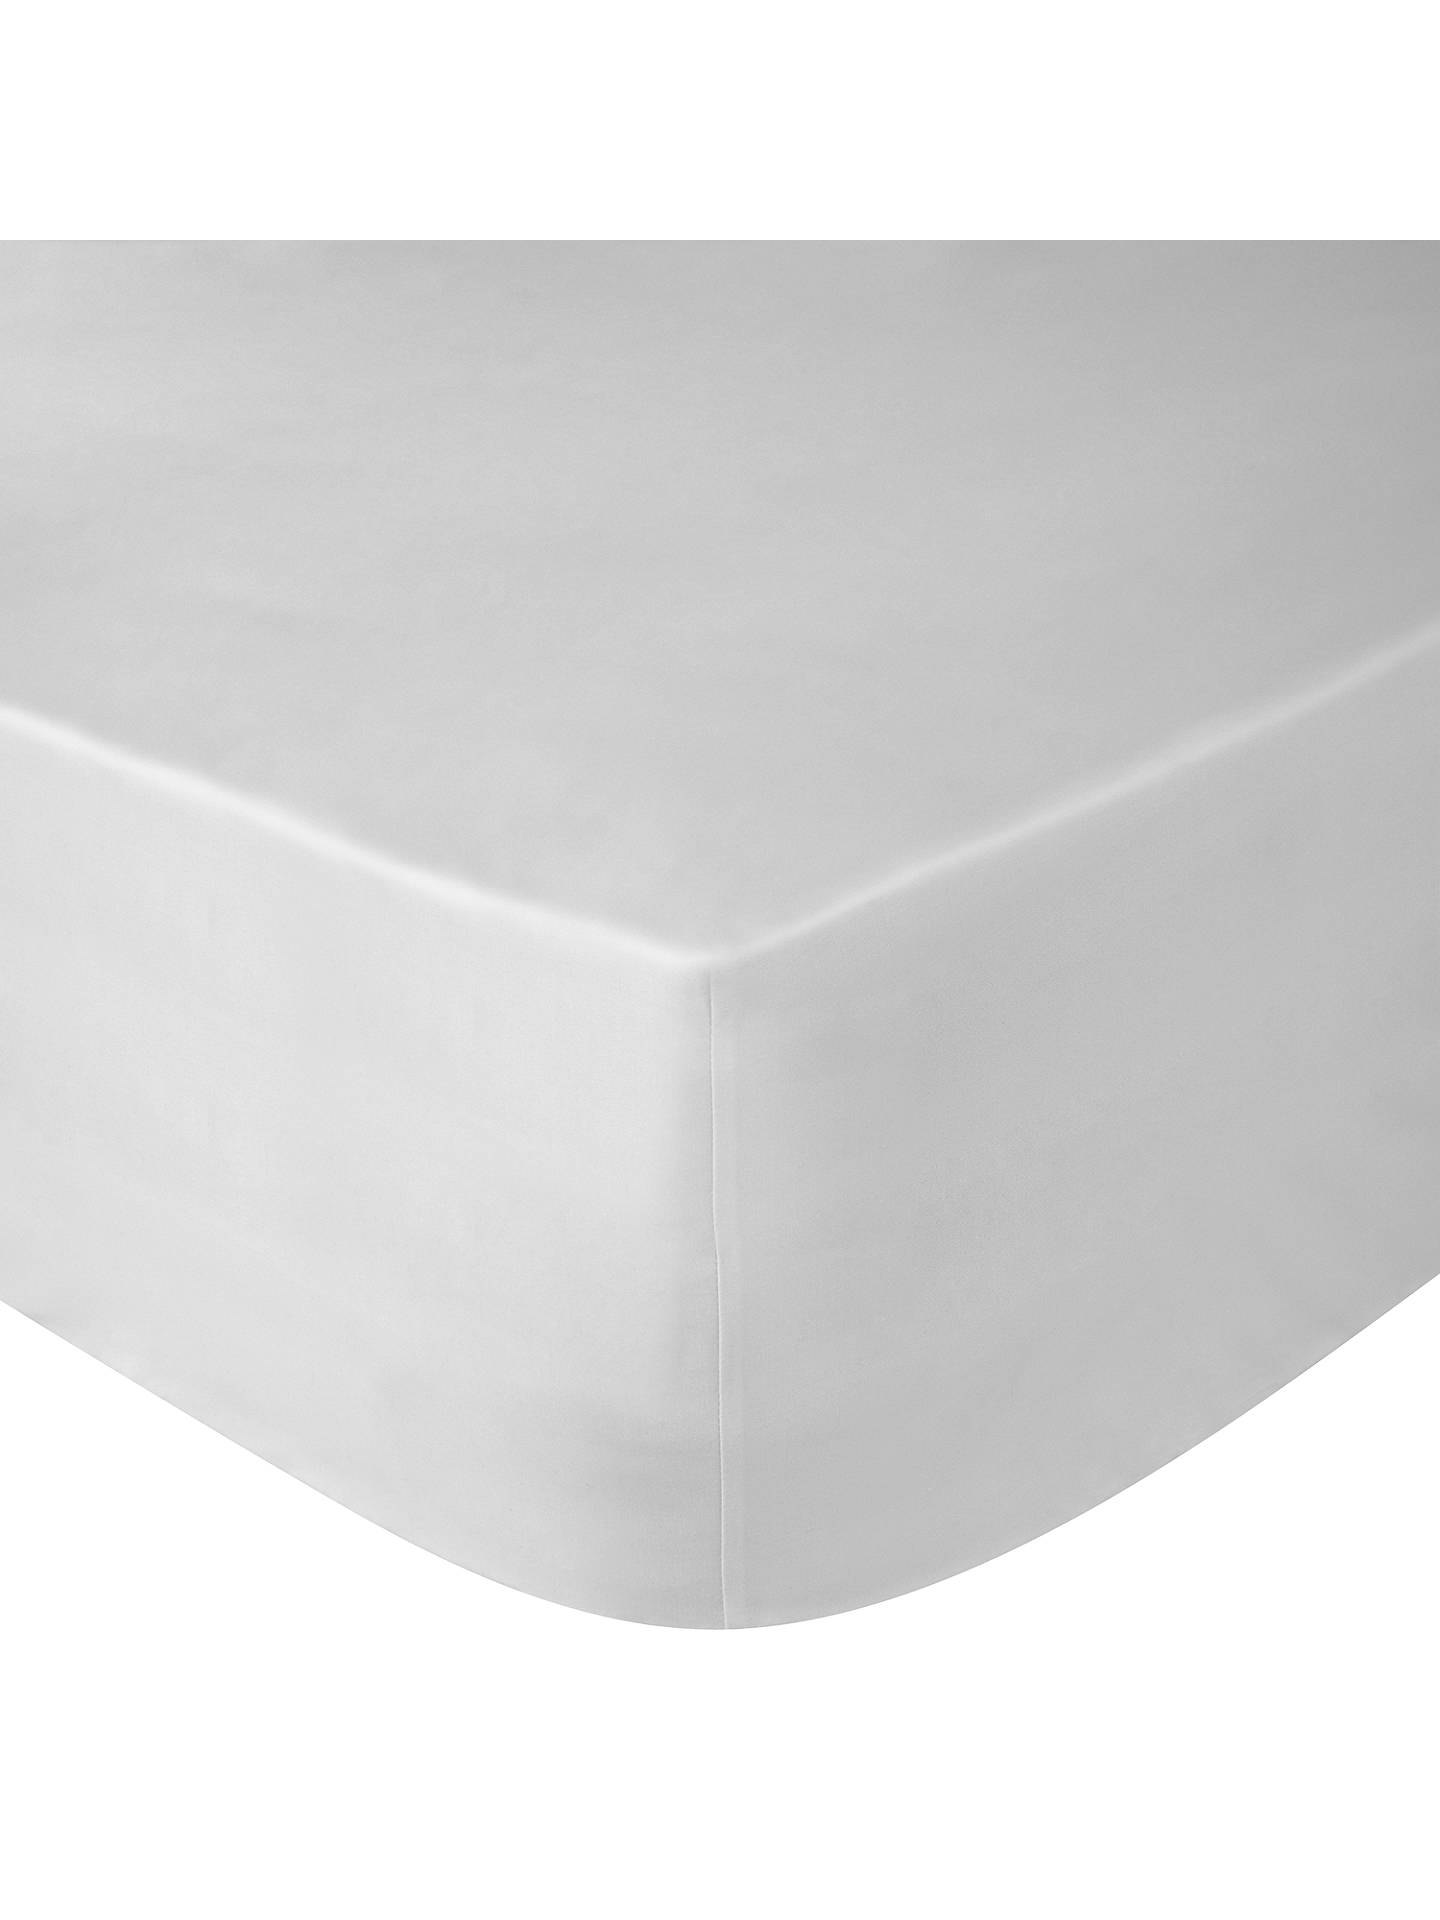 BuyPeter Reed Egyptian Cotton 4 Row Cord Fitted Sheet, White, Single Online at johnlewis.com